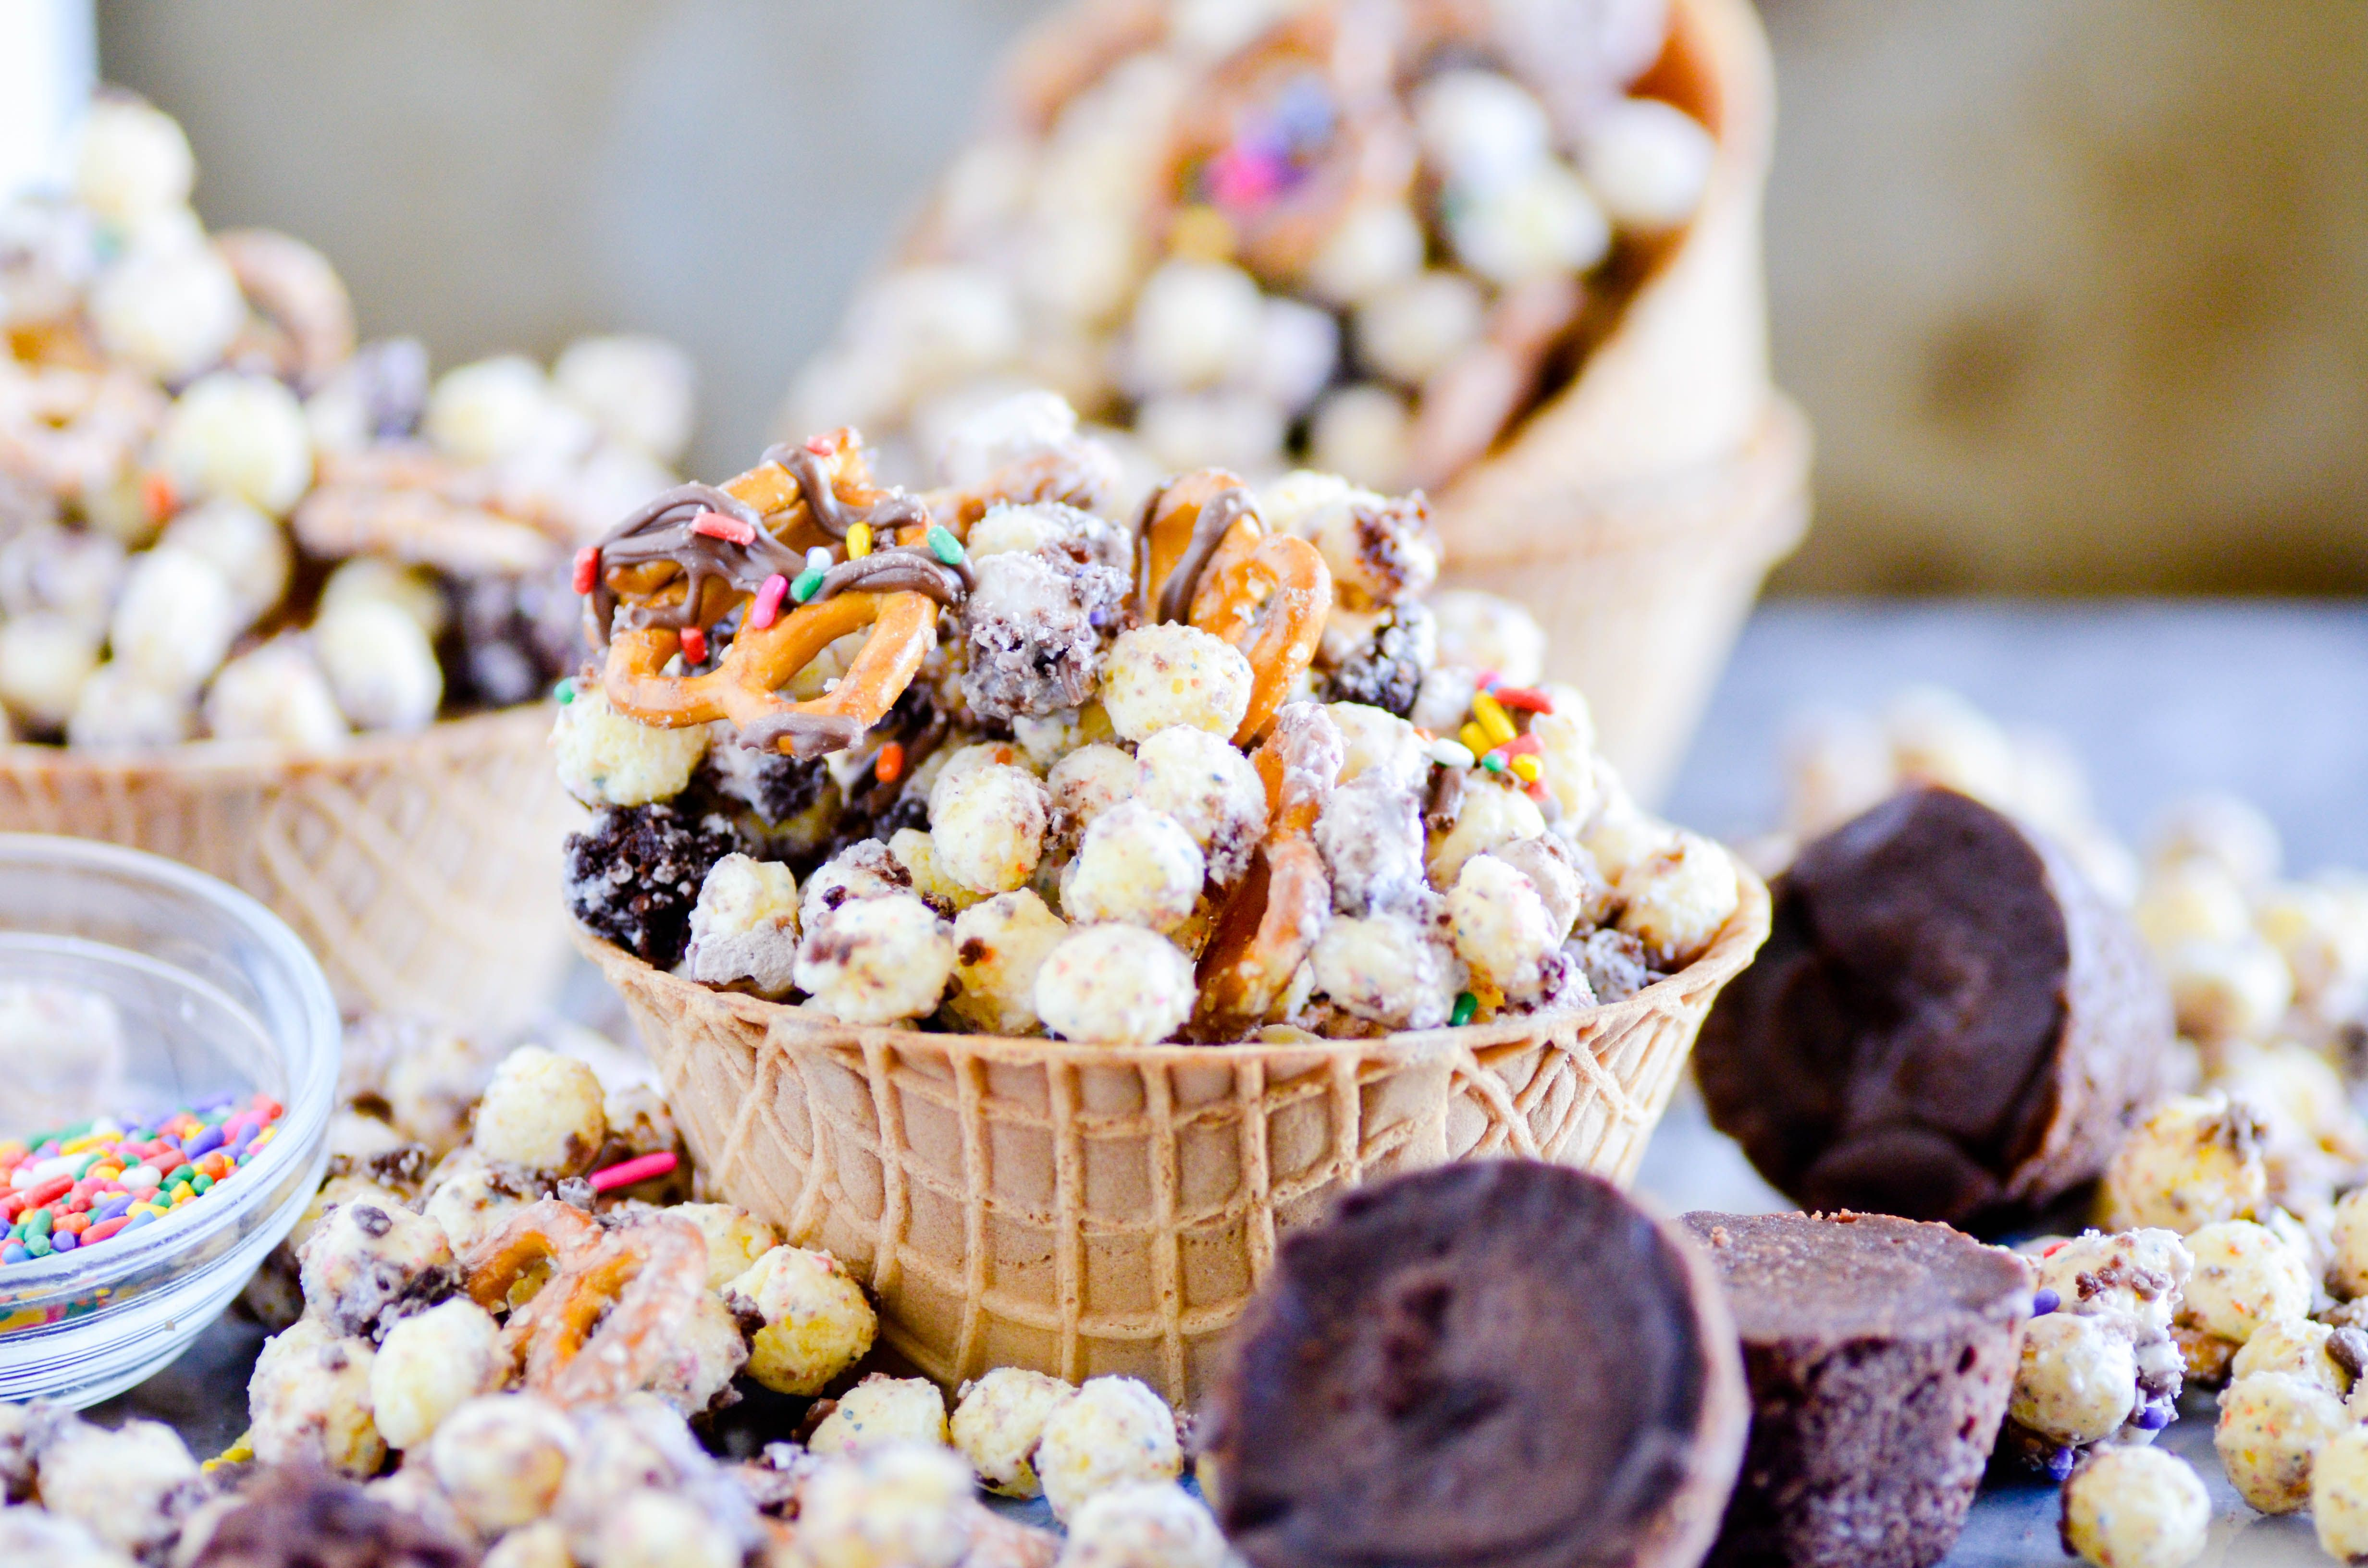 Birthday cake remix snack mix with brownies and white